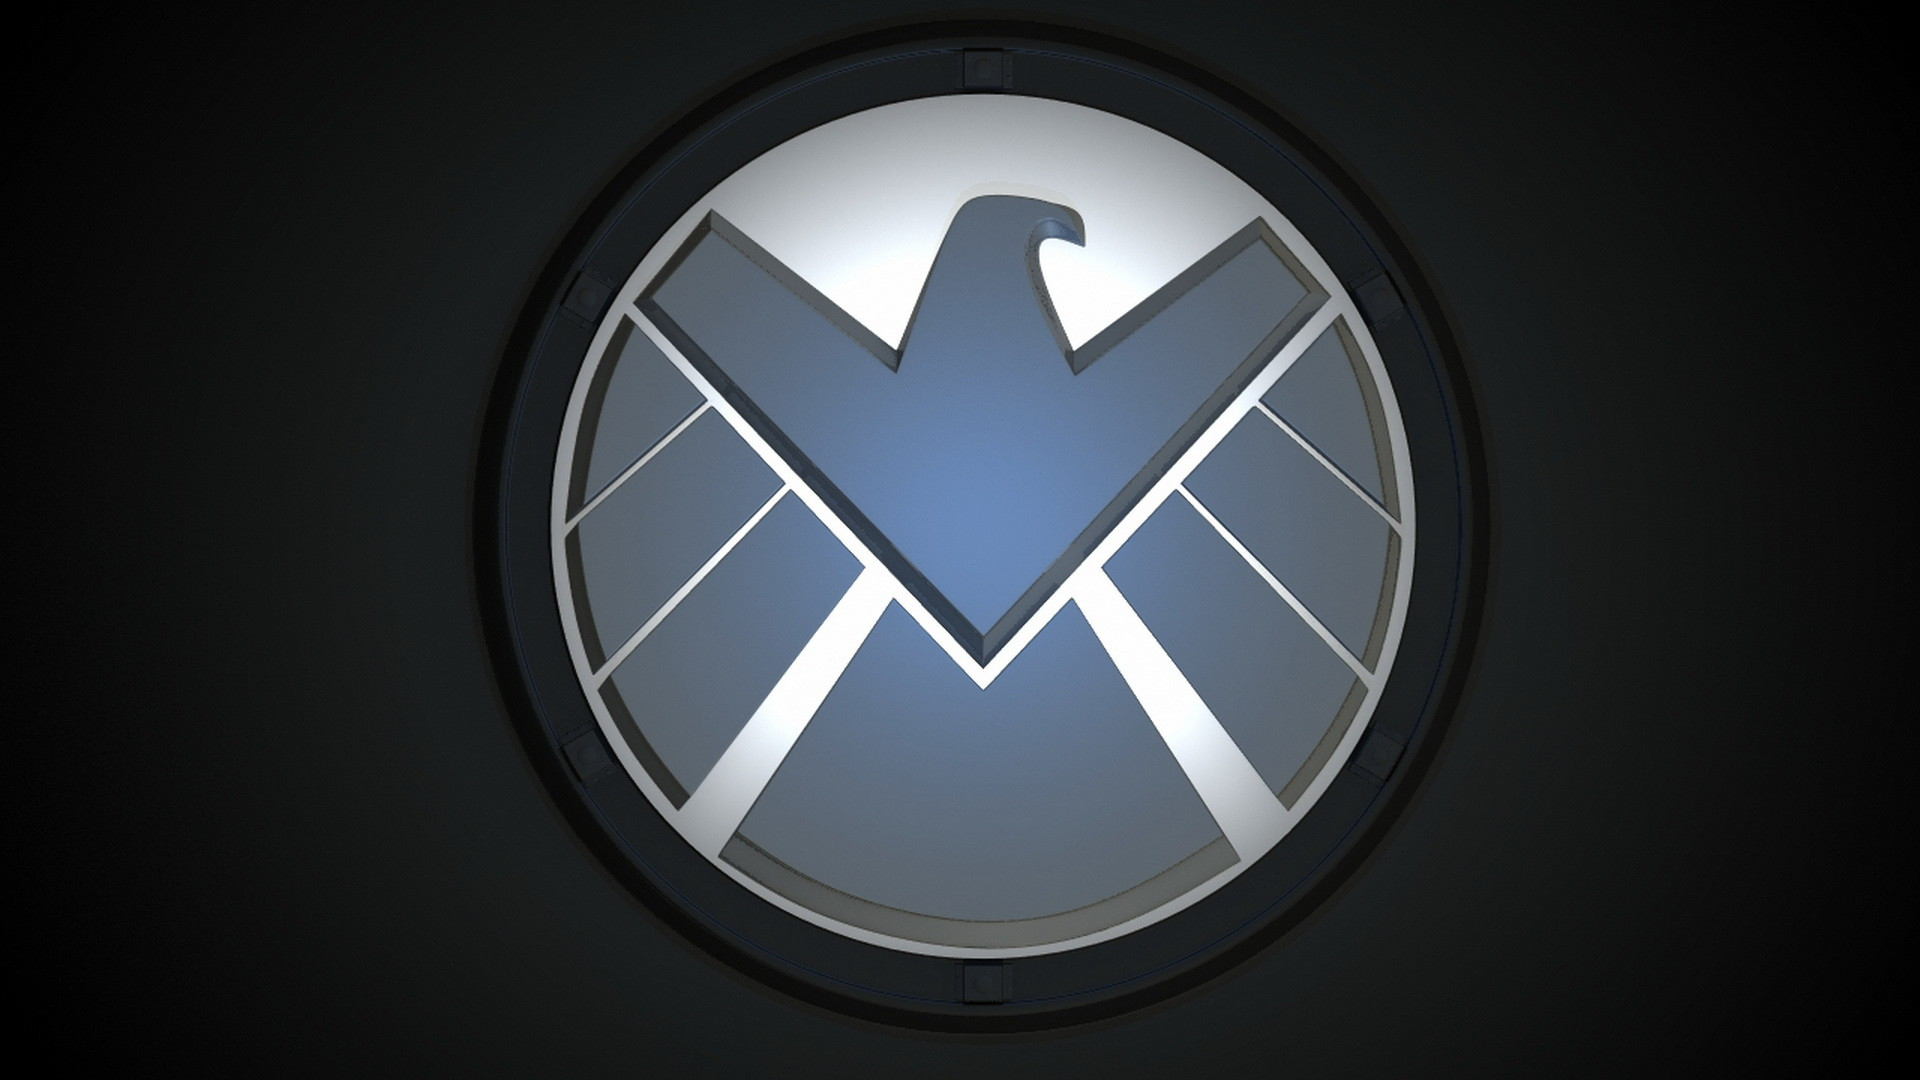 1920x1080 0 3556x2000 Agents of Shield wallpaper 8  Free Download Shield  Backgrounds